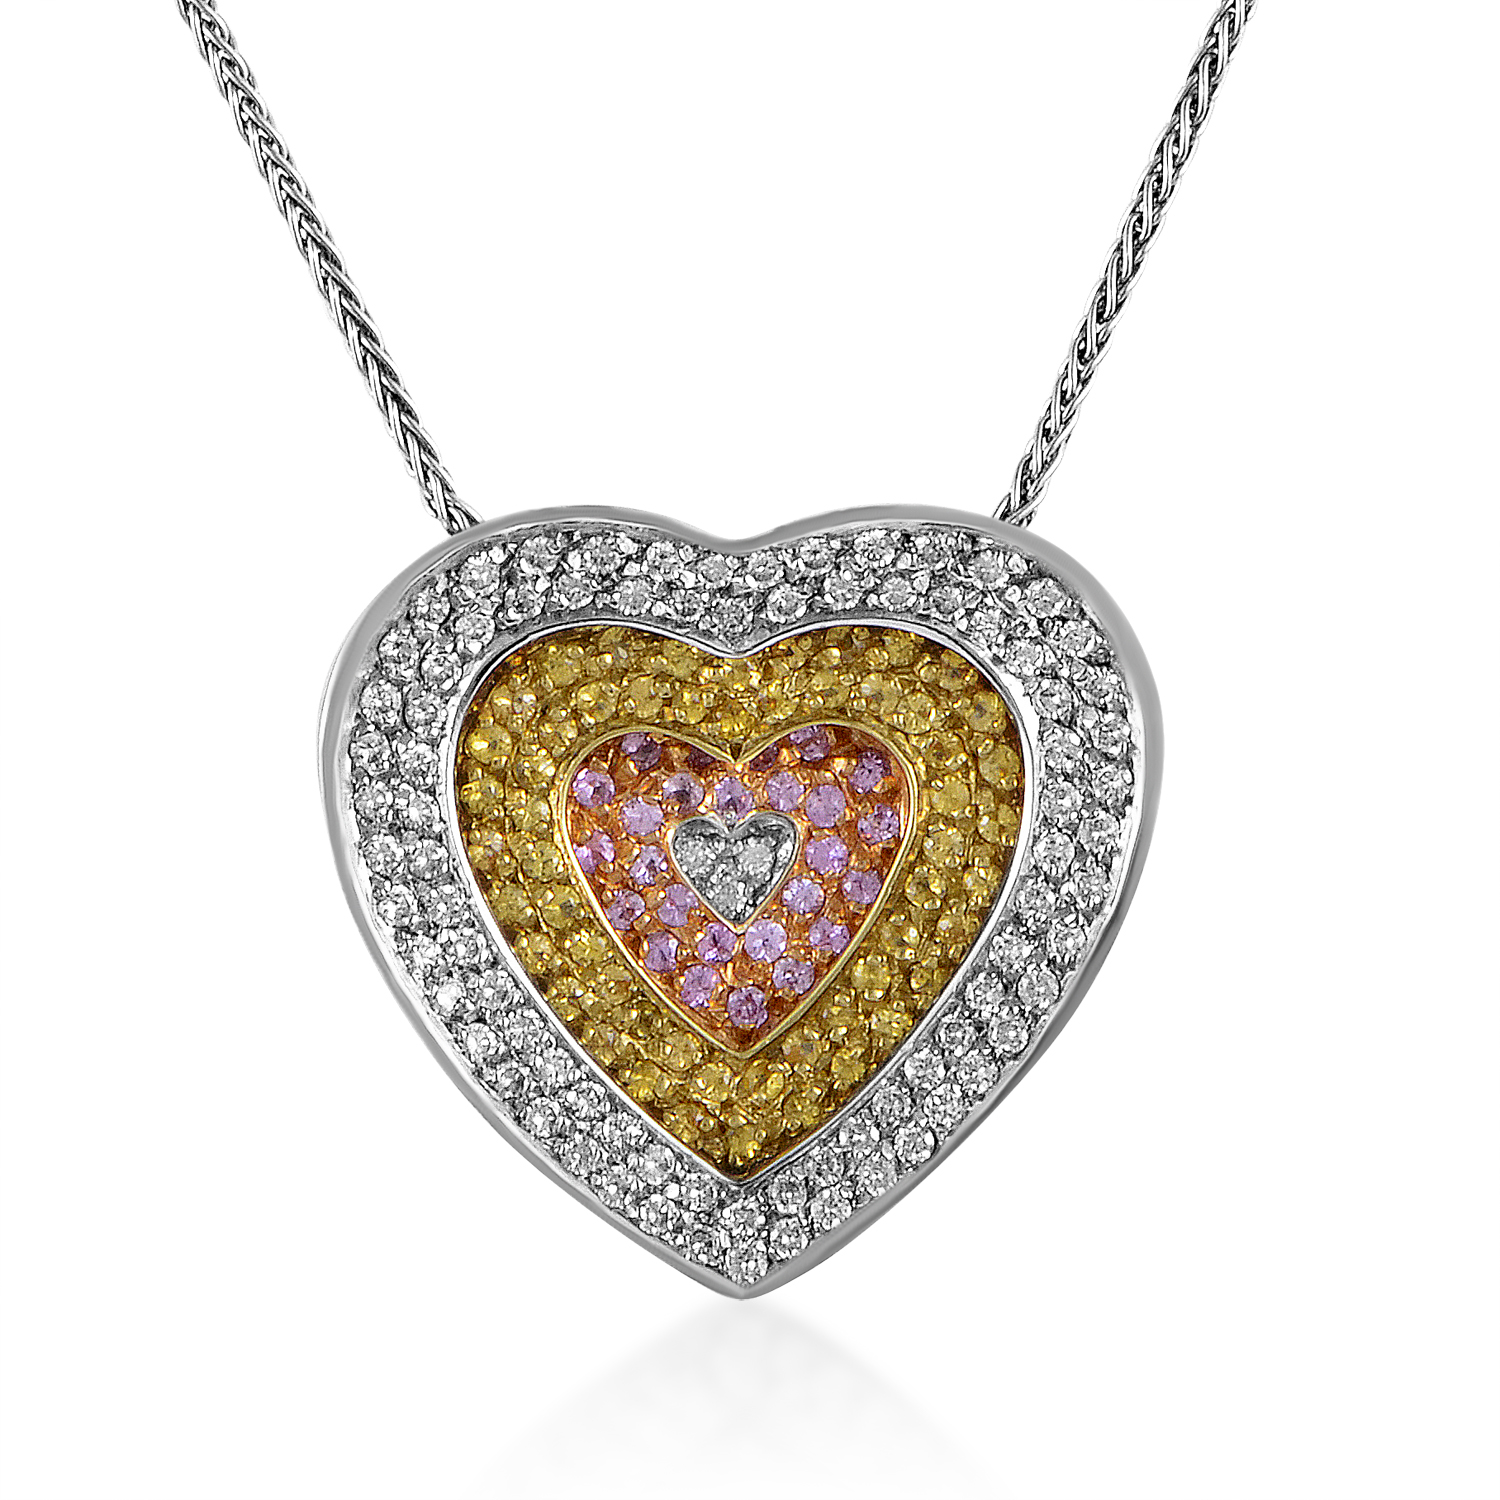 Women's 18K Tri-Gold Diamond & Sapphire Heart Pendant Necklace 160-001410